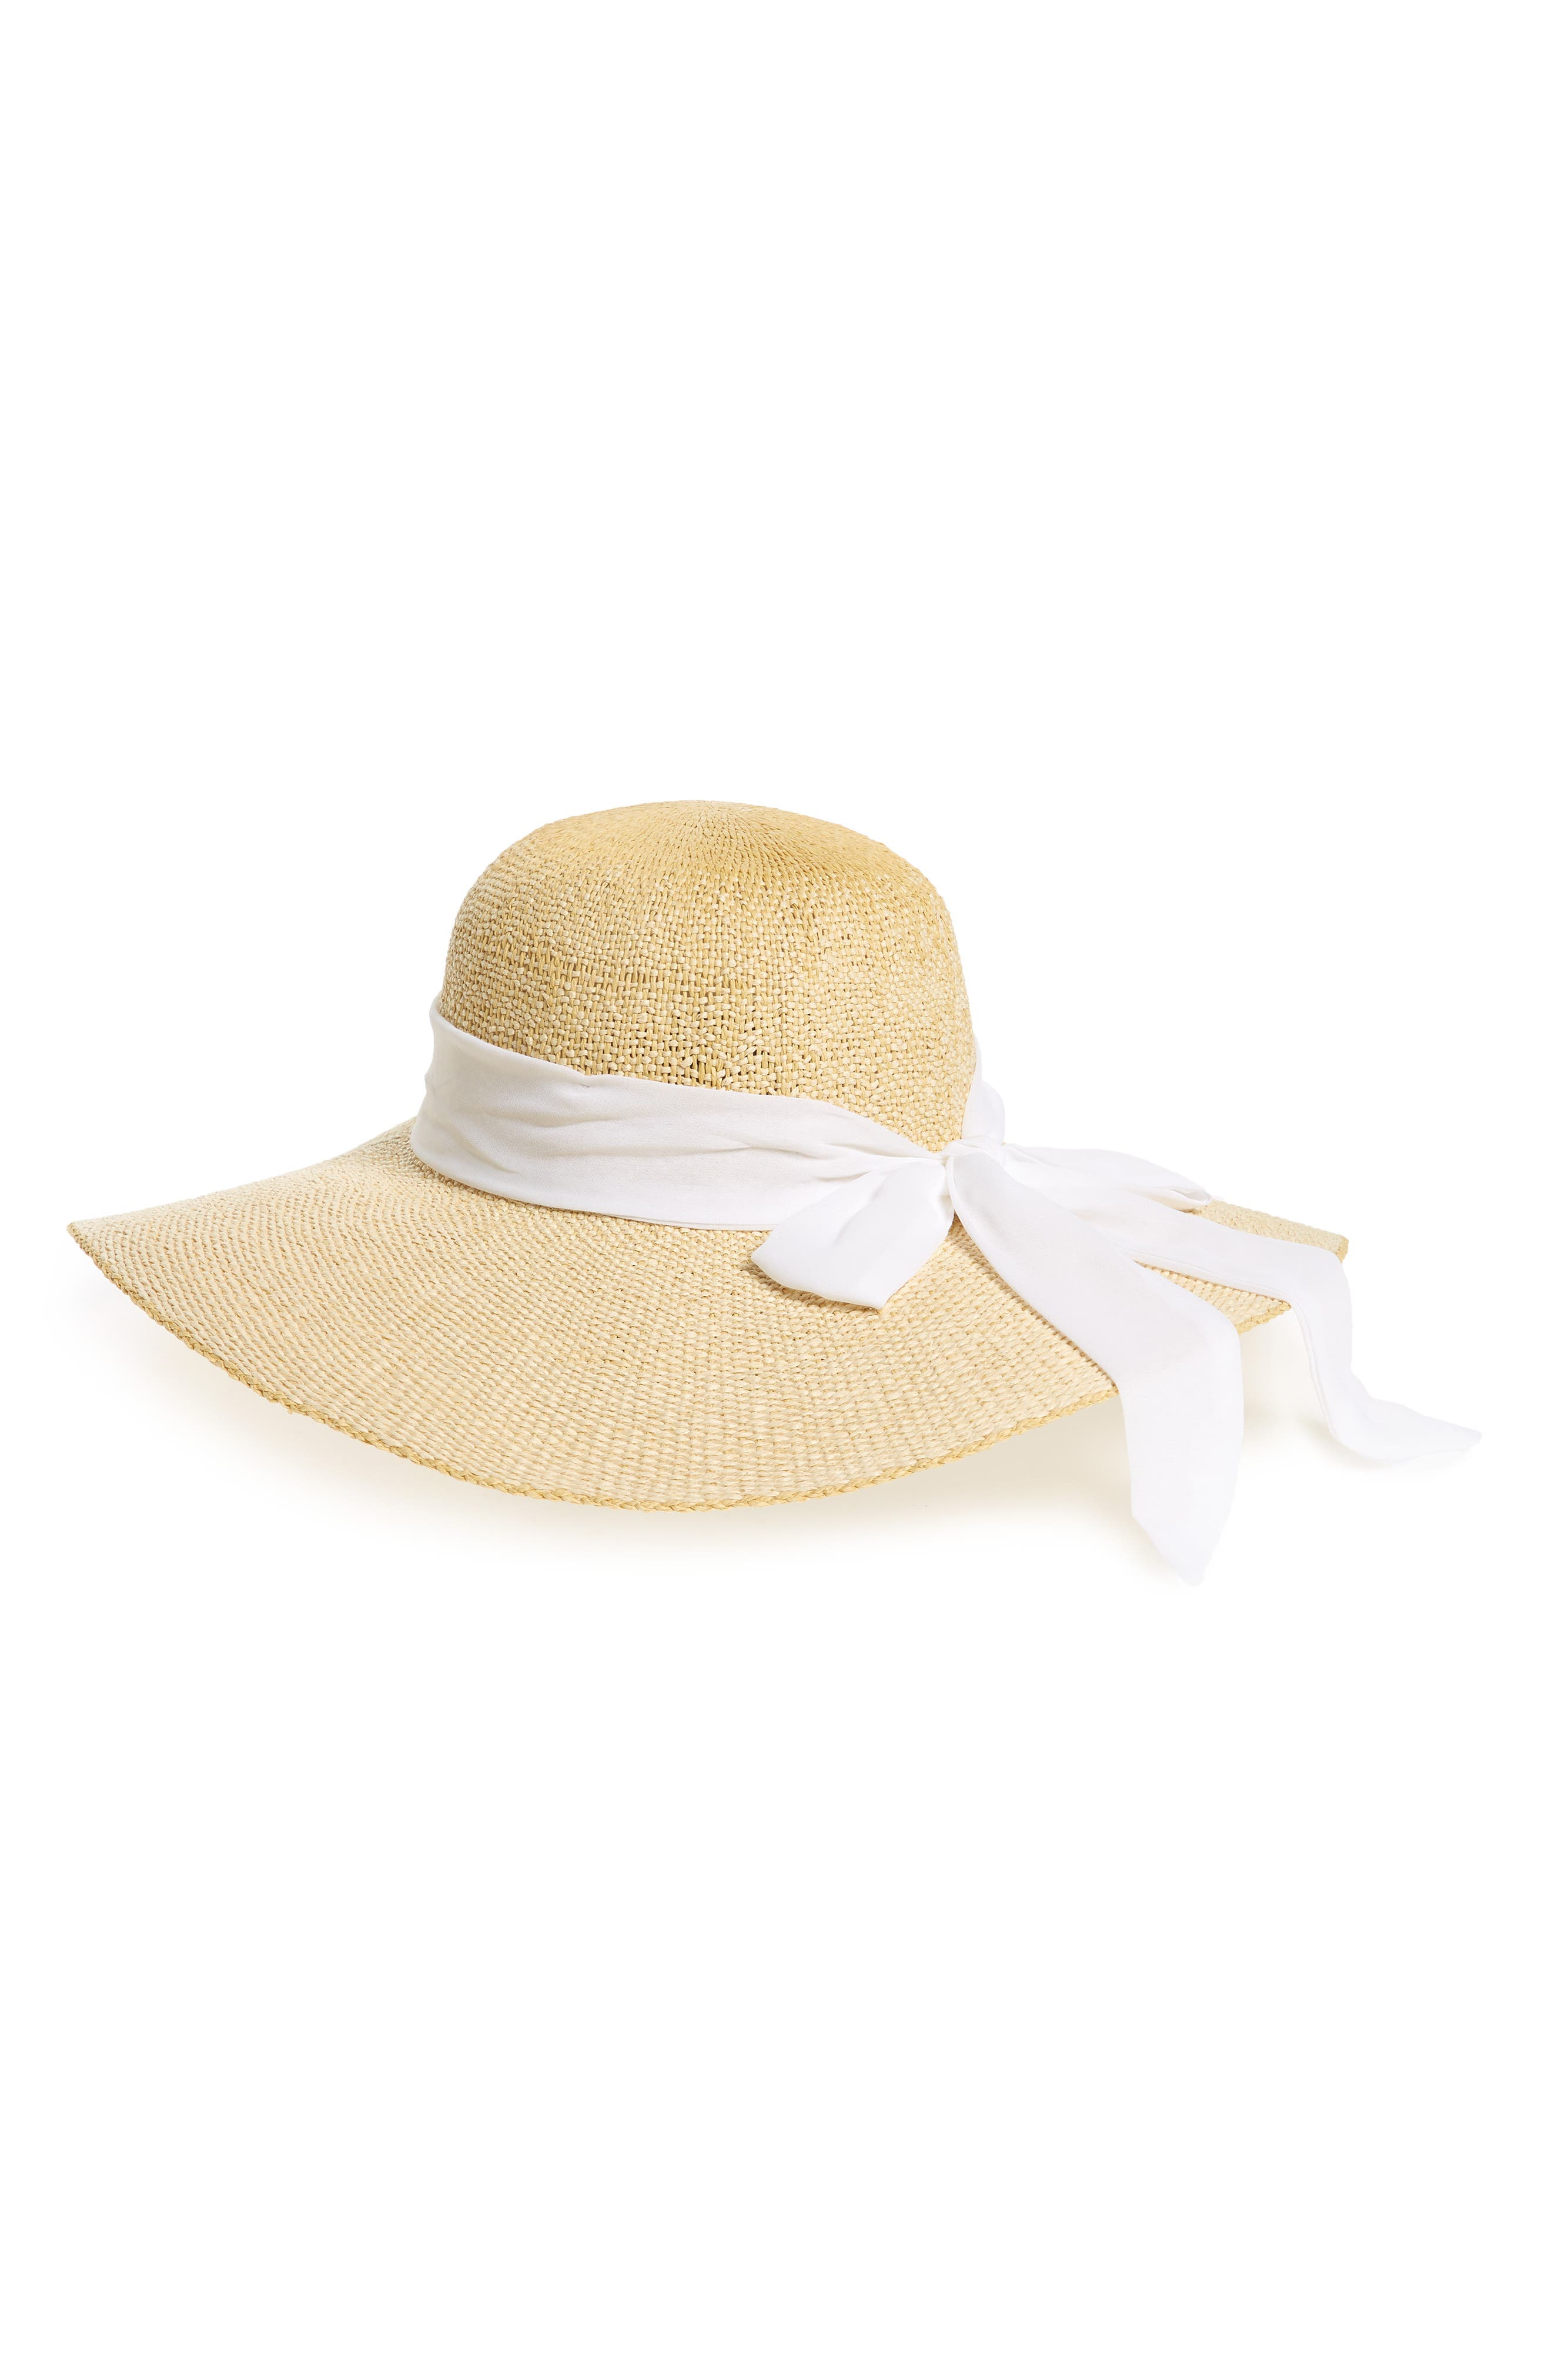 Bow Scarf Straw Floppy Hat,                             Main thumbnail 1, color,                             108